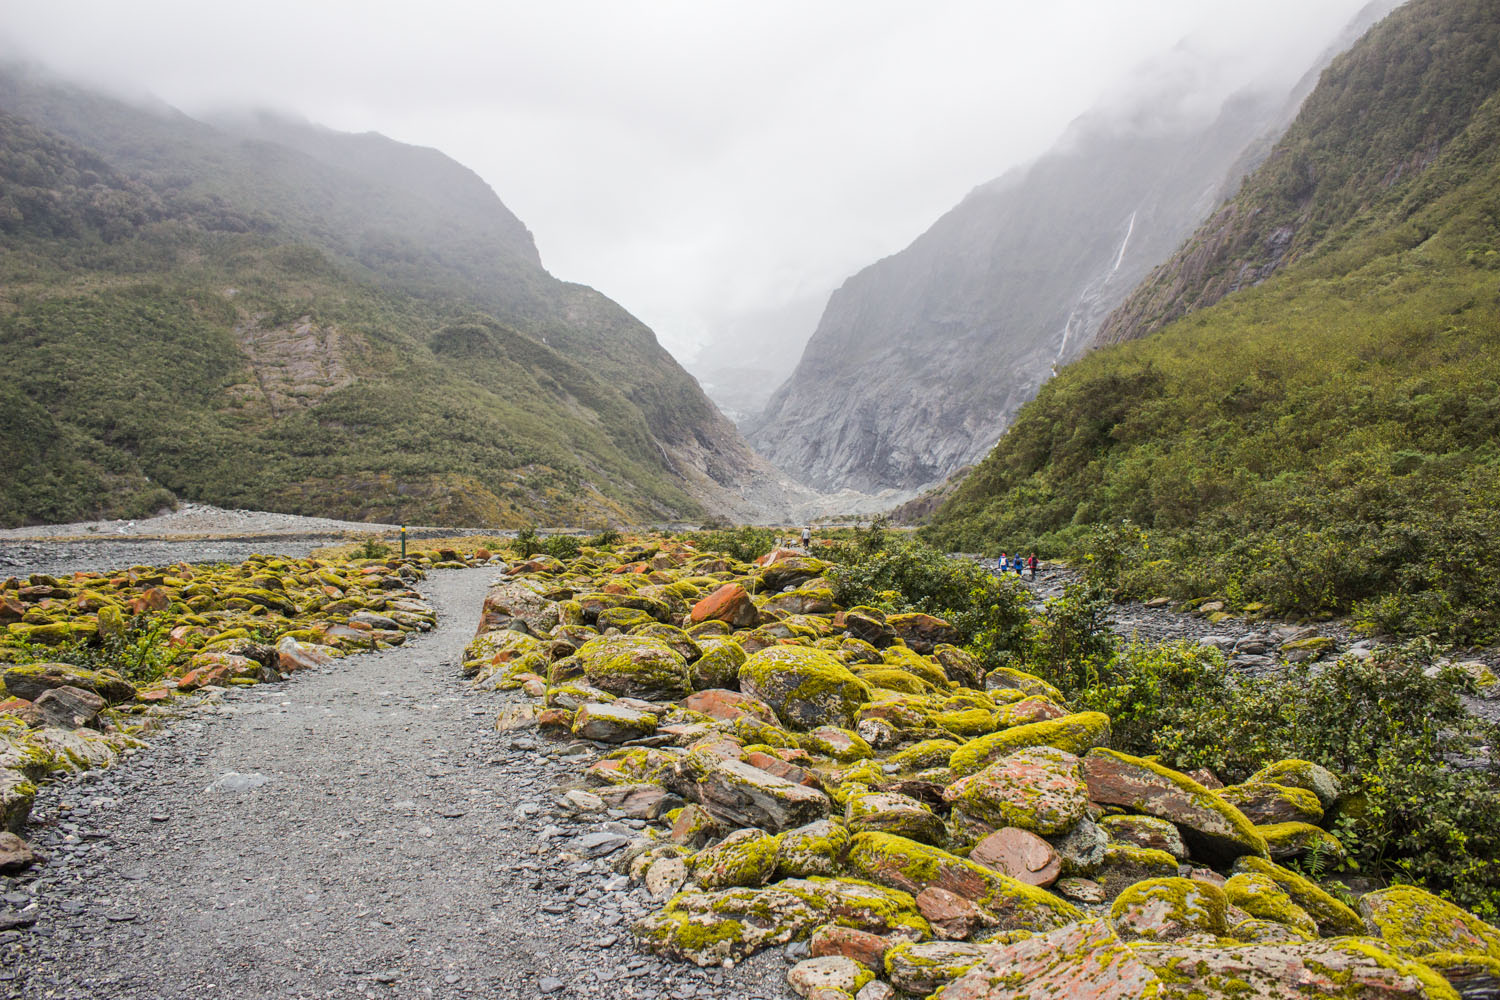 Outsized by nature in this valley with its distant glacier • Franz Josef Glacier, New Zealand •